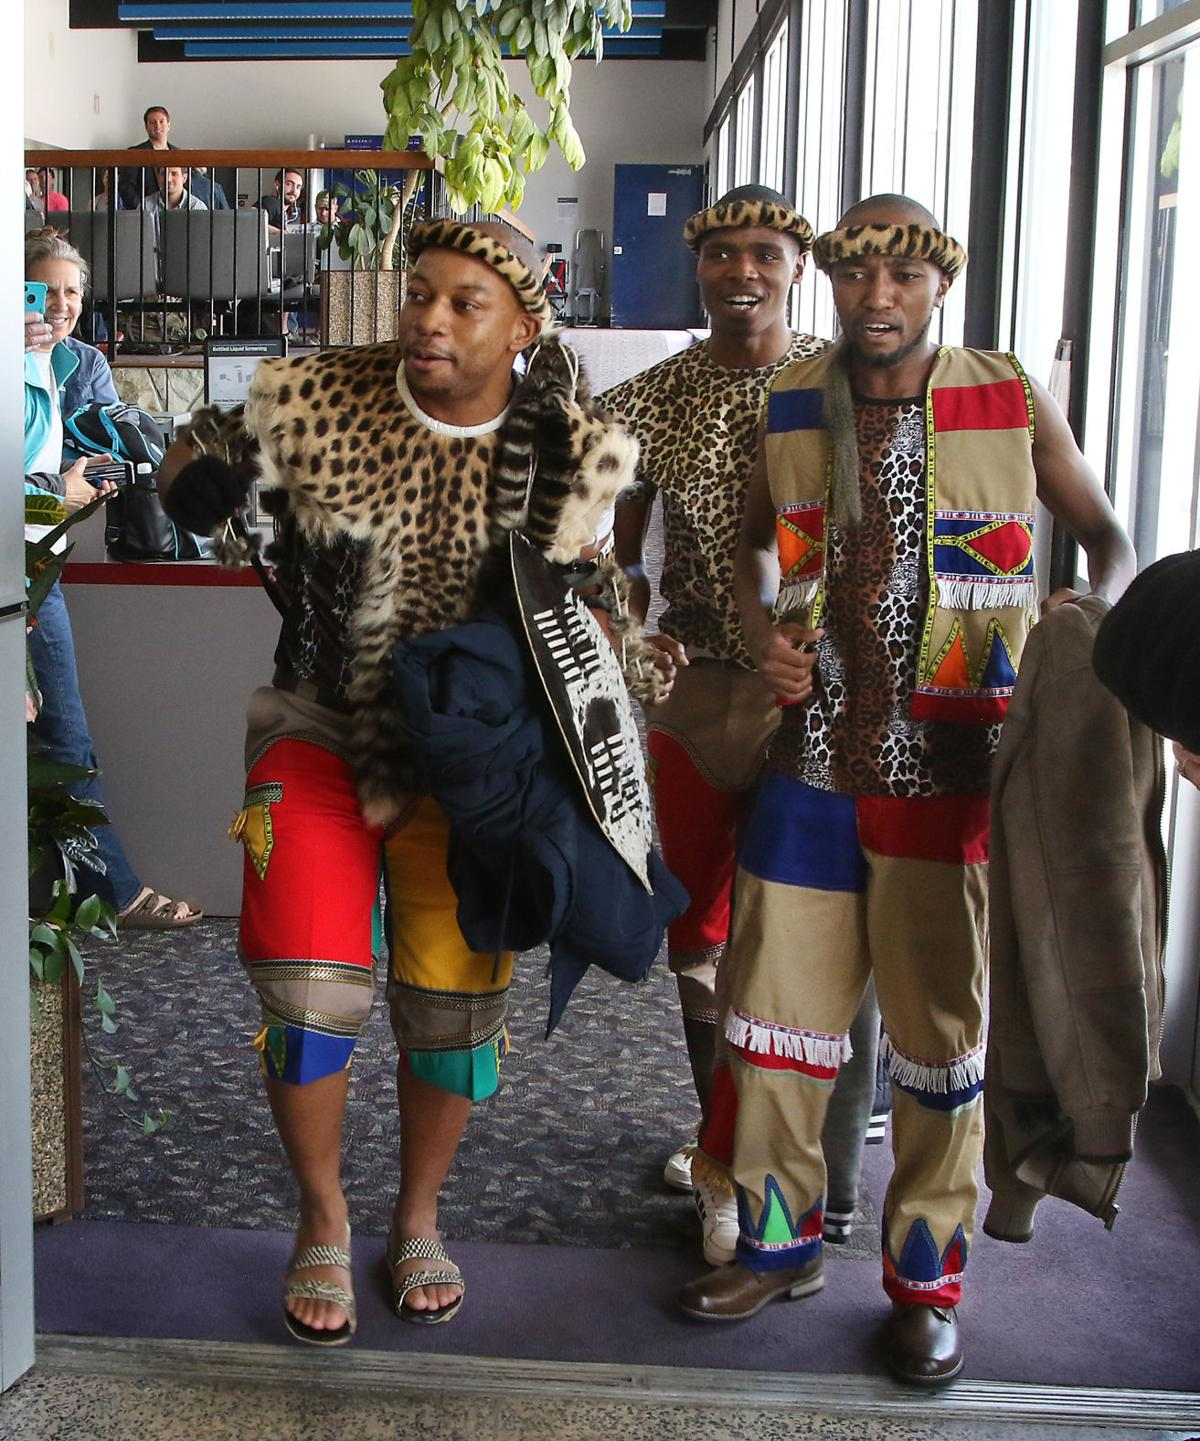 African prince arrives for summer in Butte